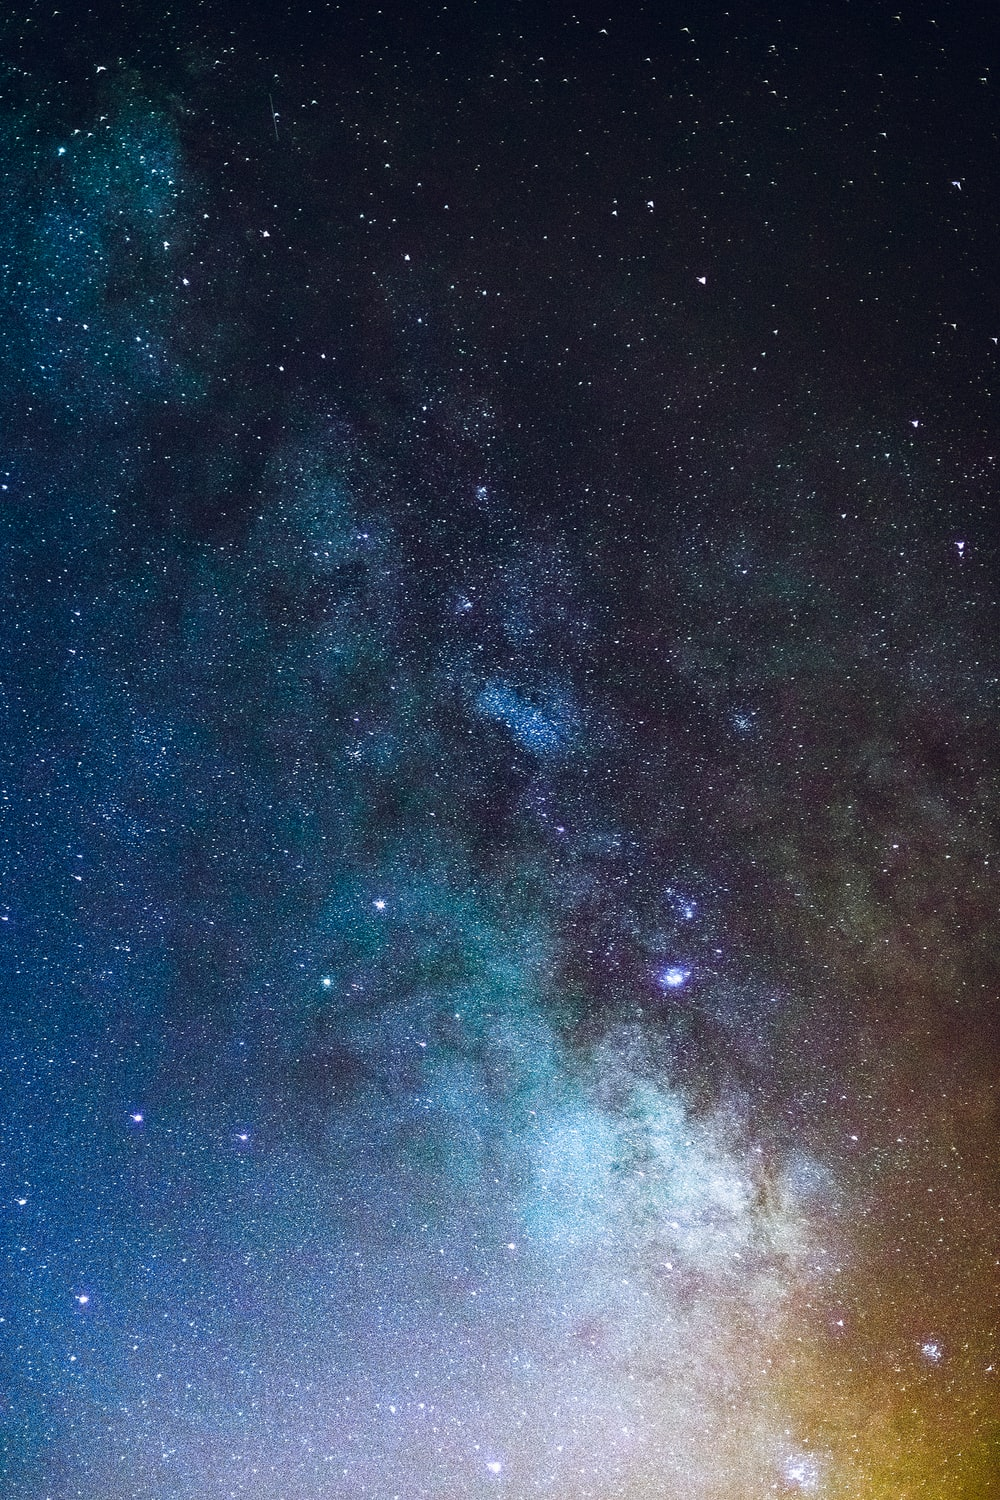 20 Galaxy Pictures [HQ] Download Images on Unsplash 1000x1500